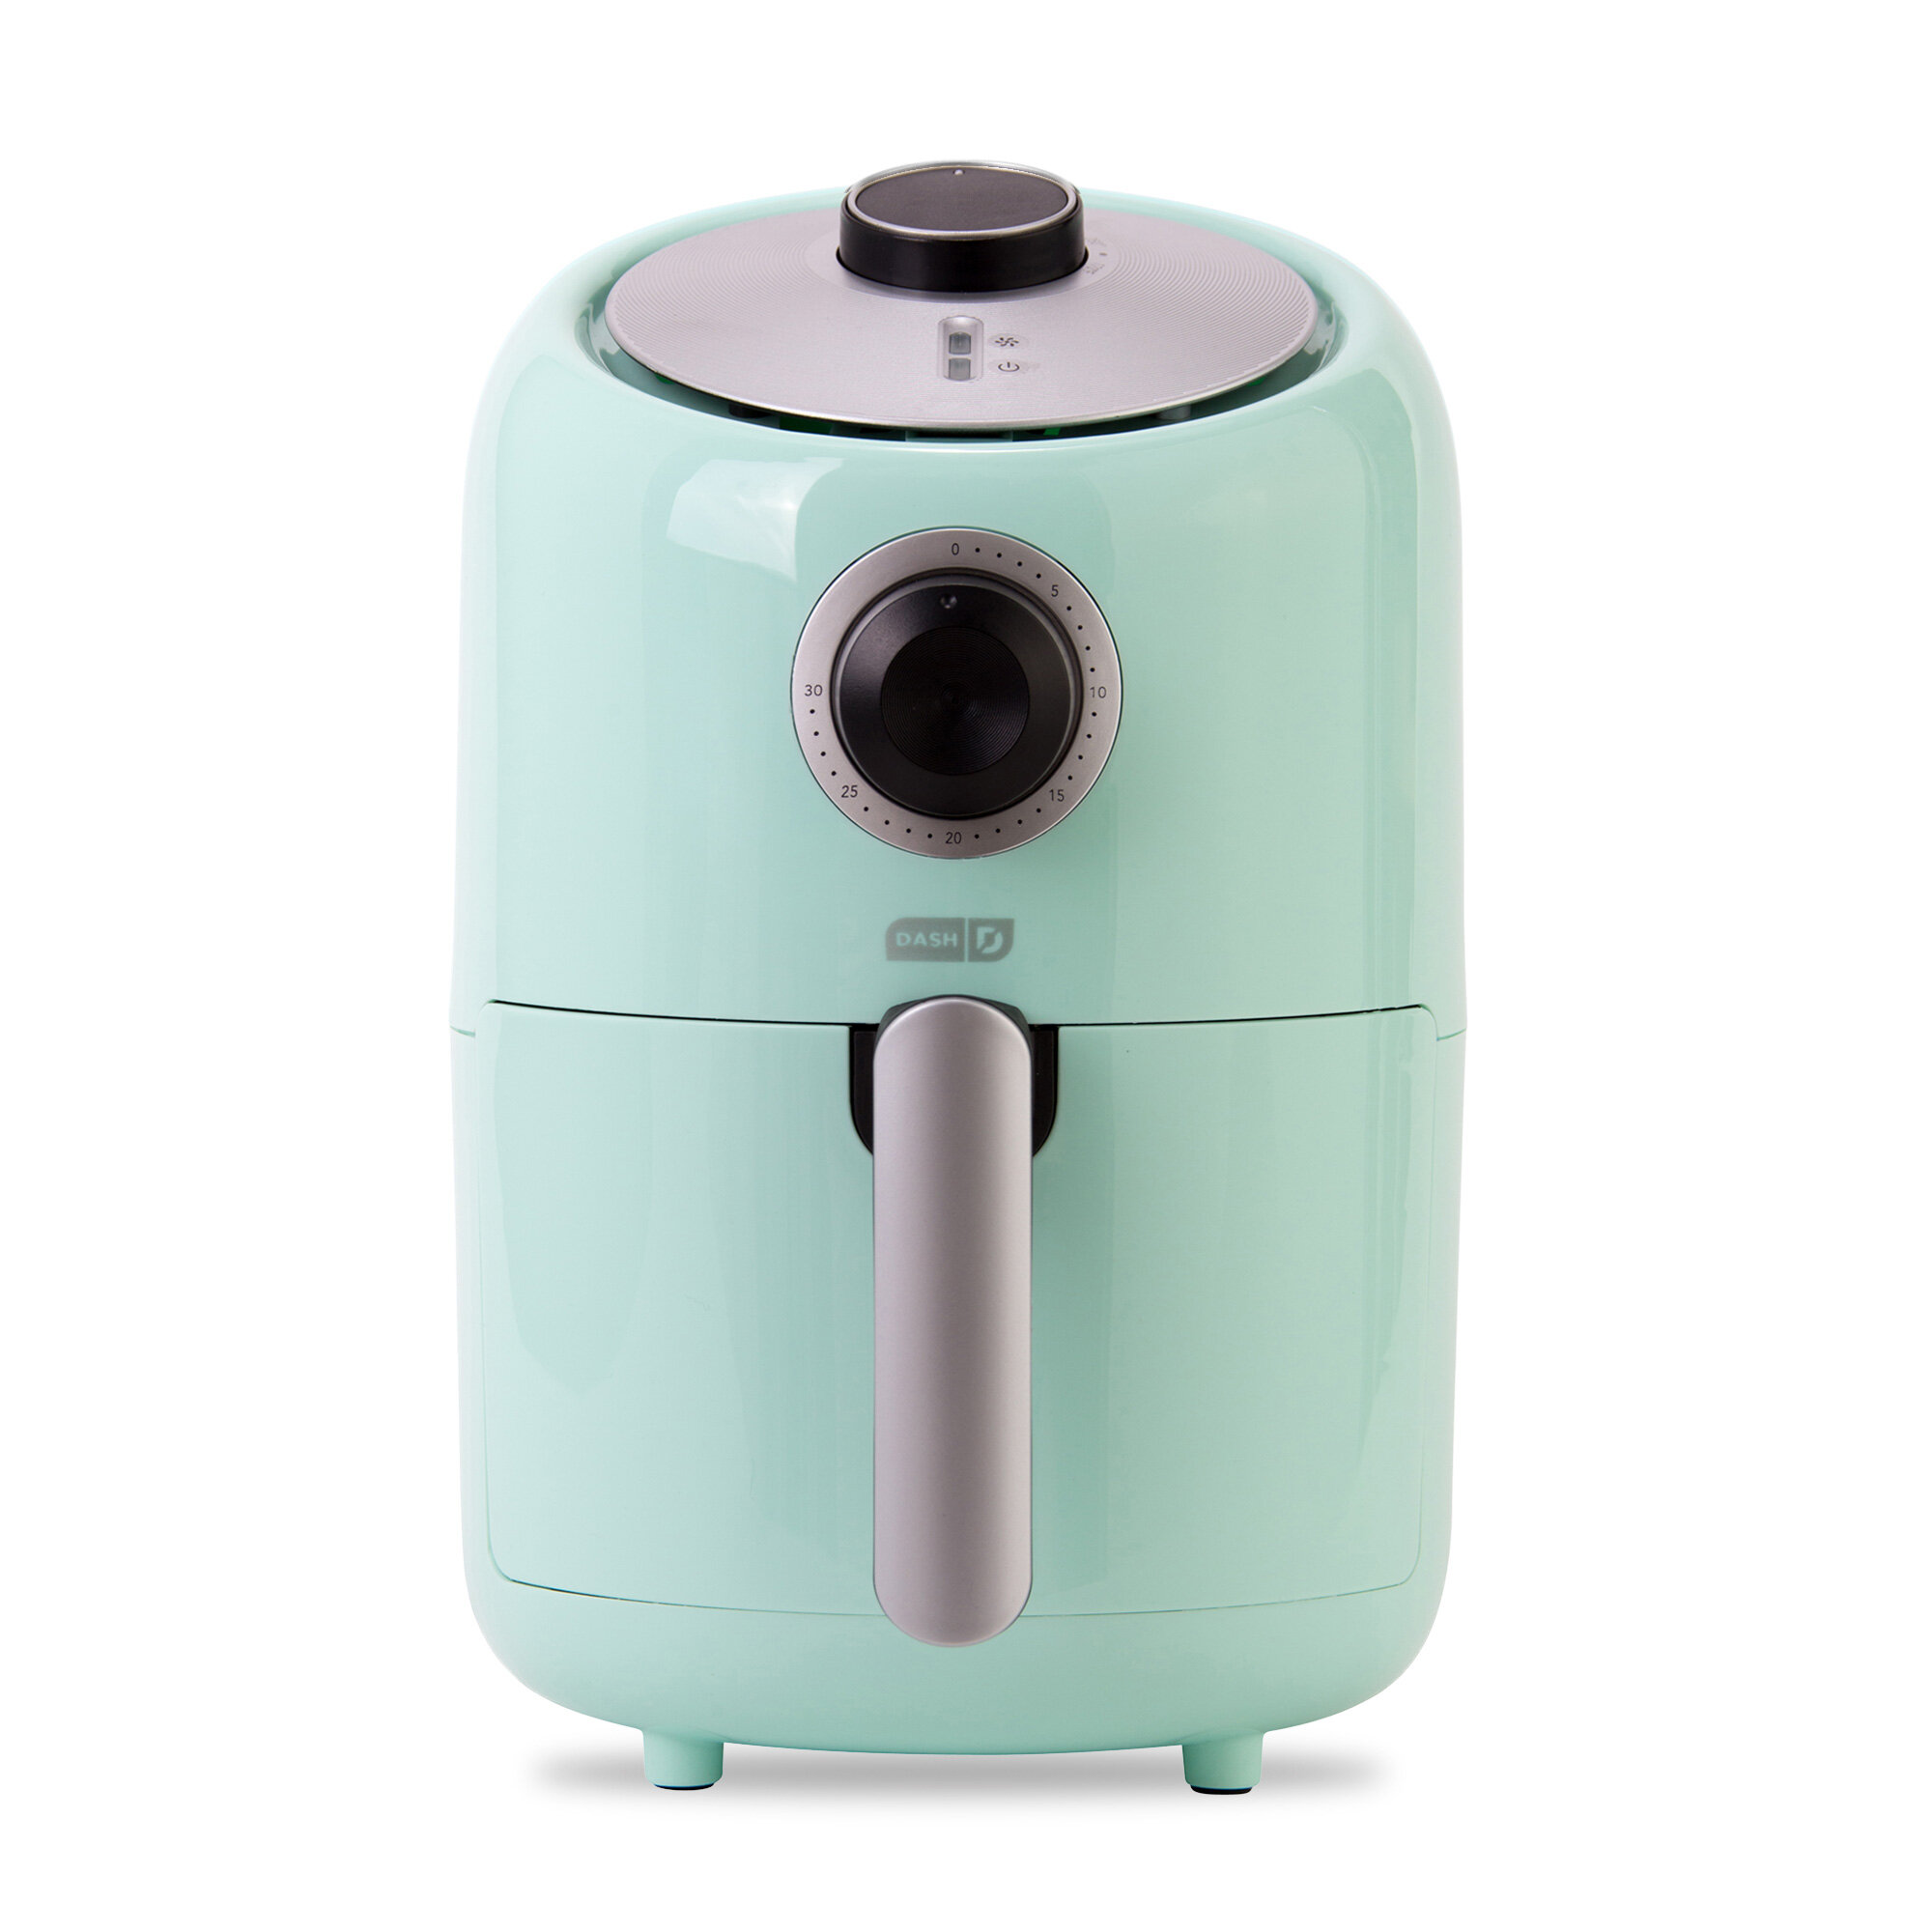 DASH 1.2 Liter Compact Air Fryer & Reviews | Wayfair